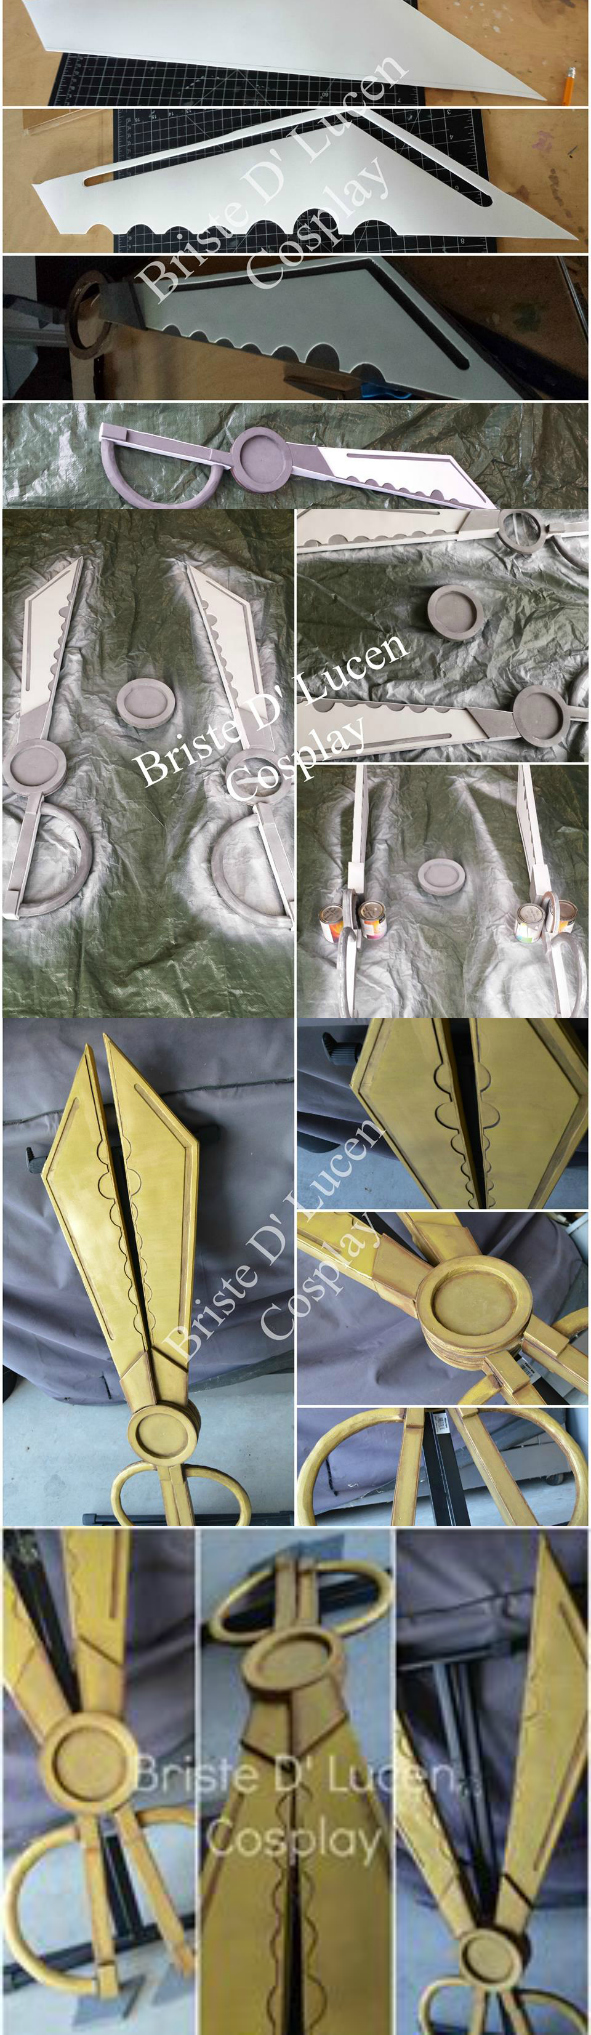 Puppeteer Scissors Tutorial 2 by briste